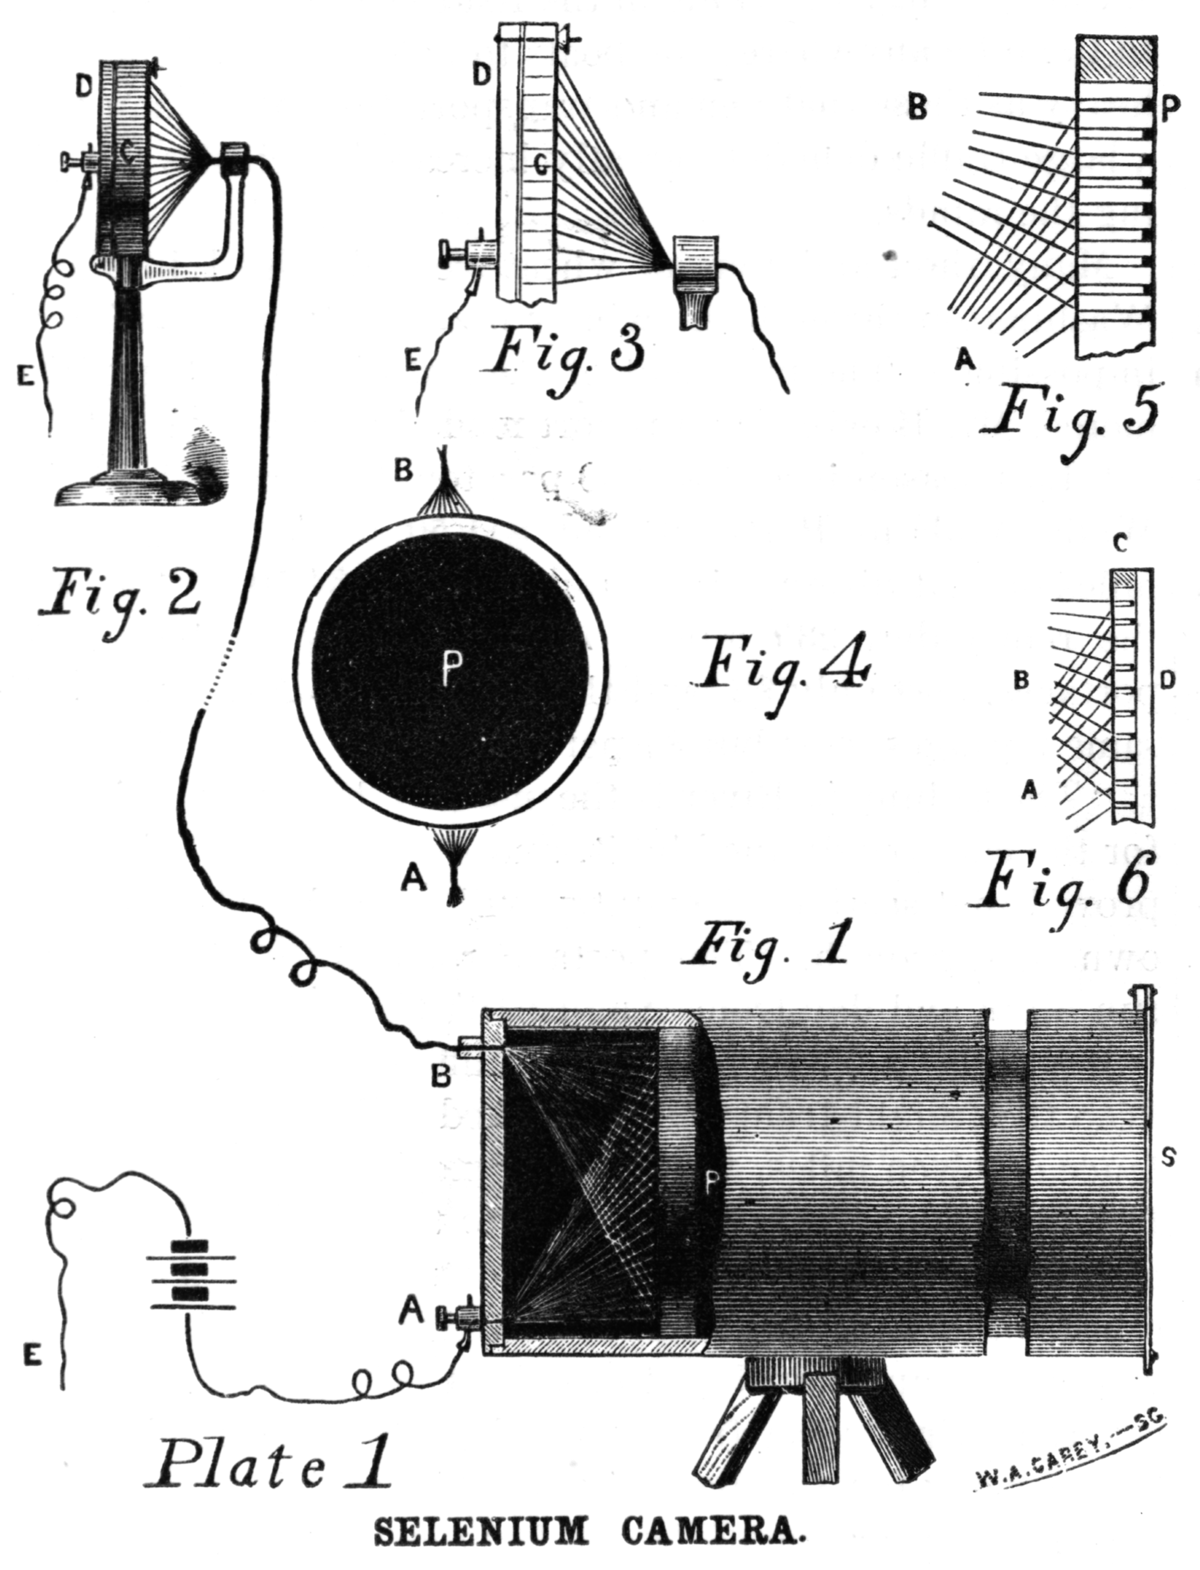 1200px Selenium_camera_by_George_R._Carey_1880 george r carey wikipedia came photocell wiring diagram at cos-gaming.co